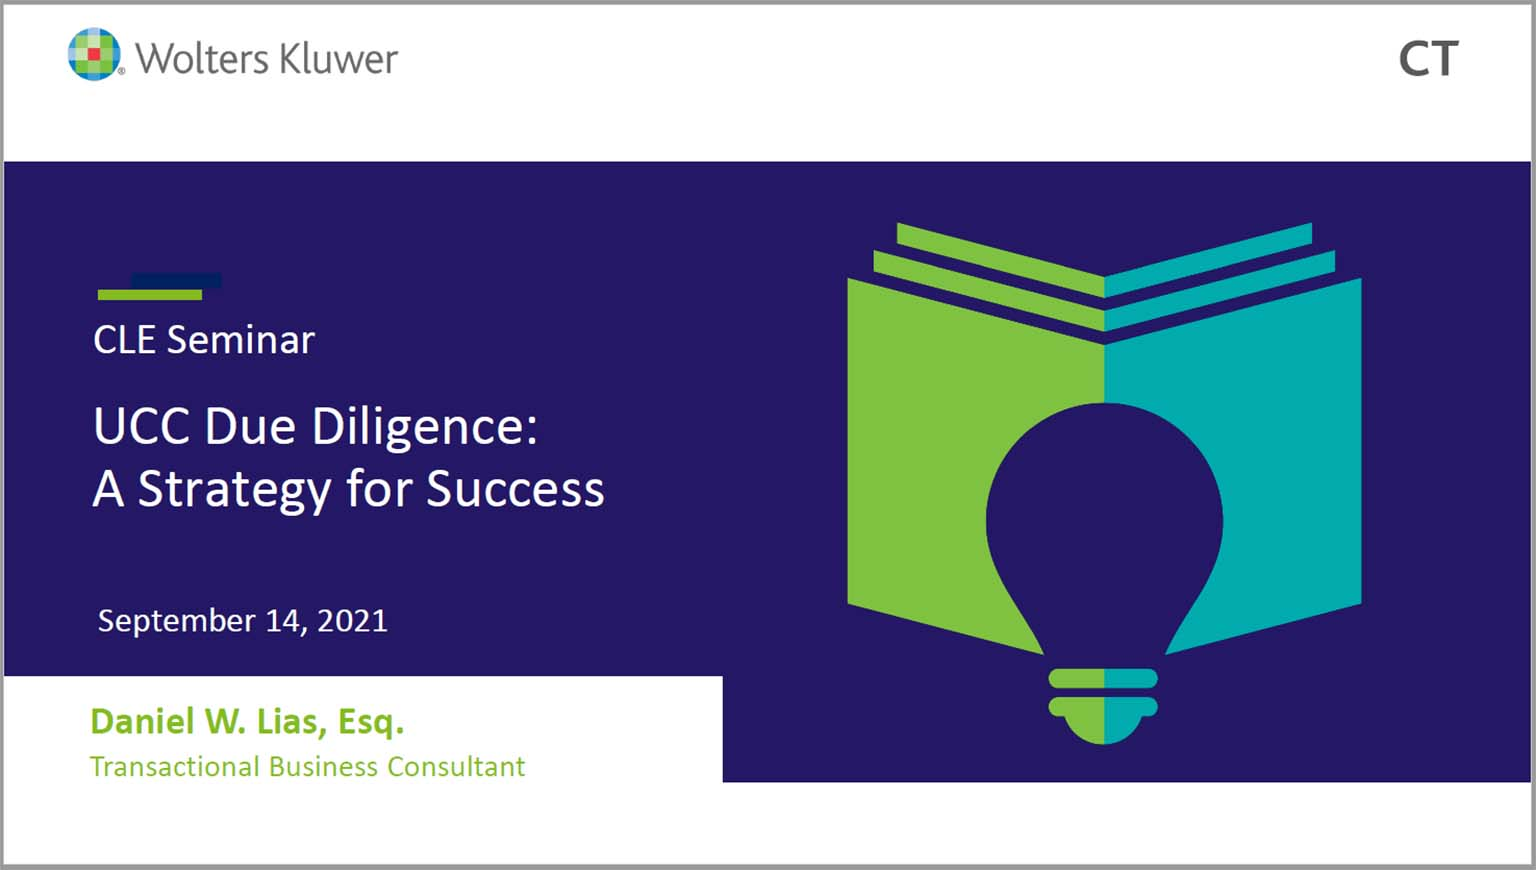 UCC Due Diligence: A Strategy for Success